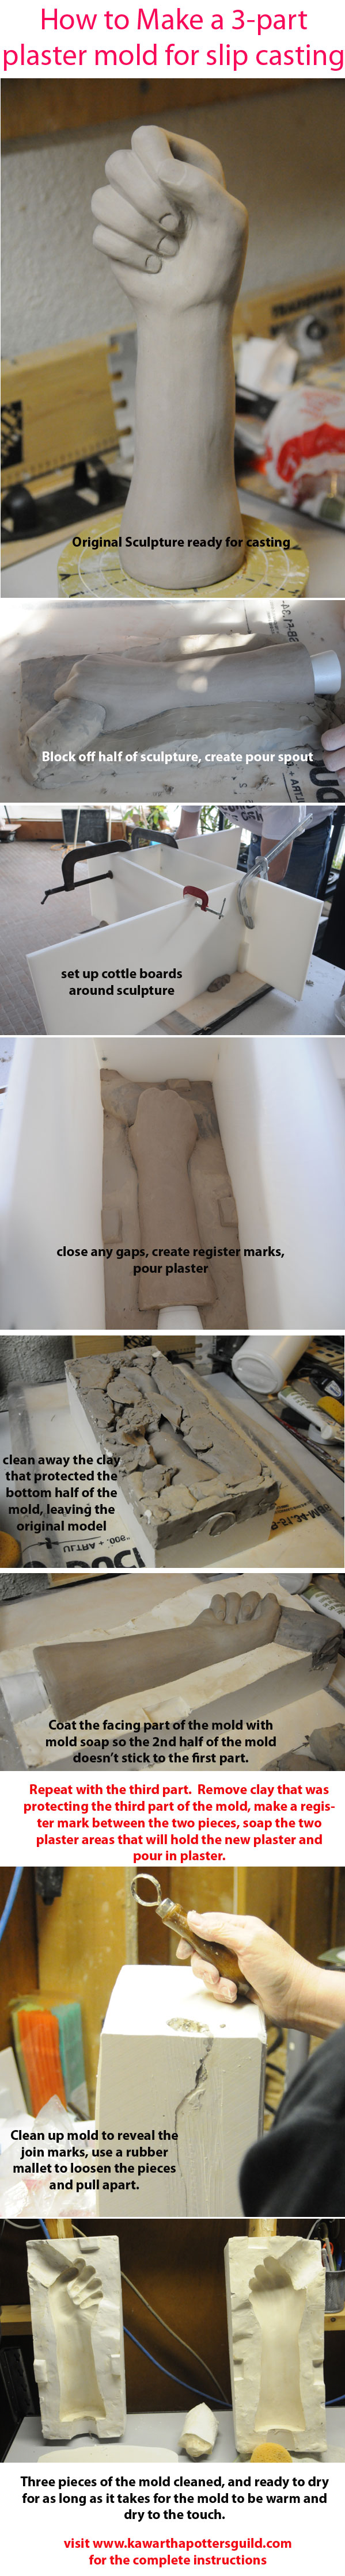 How to make clay plaster - How To Create A 3 Part Plaster Mold For Slip Casting Pottery See Www